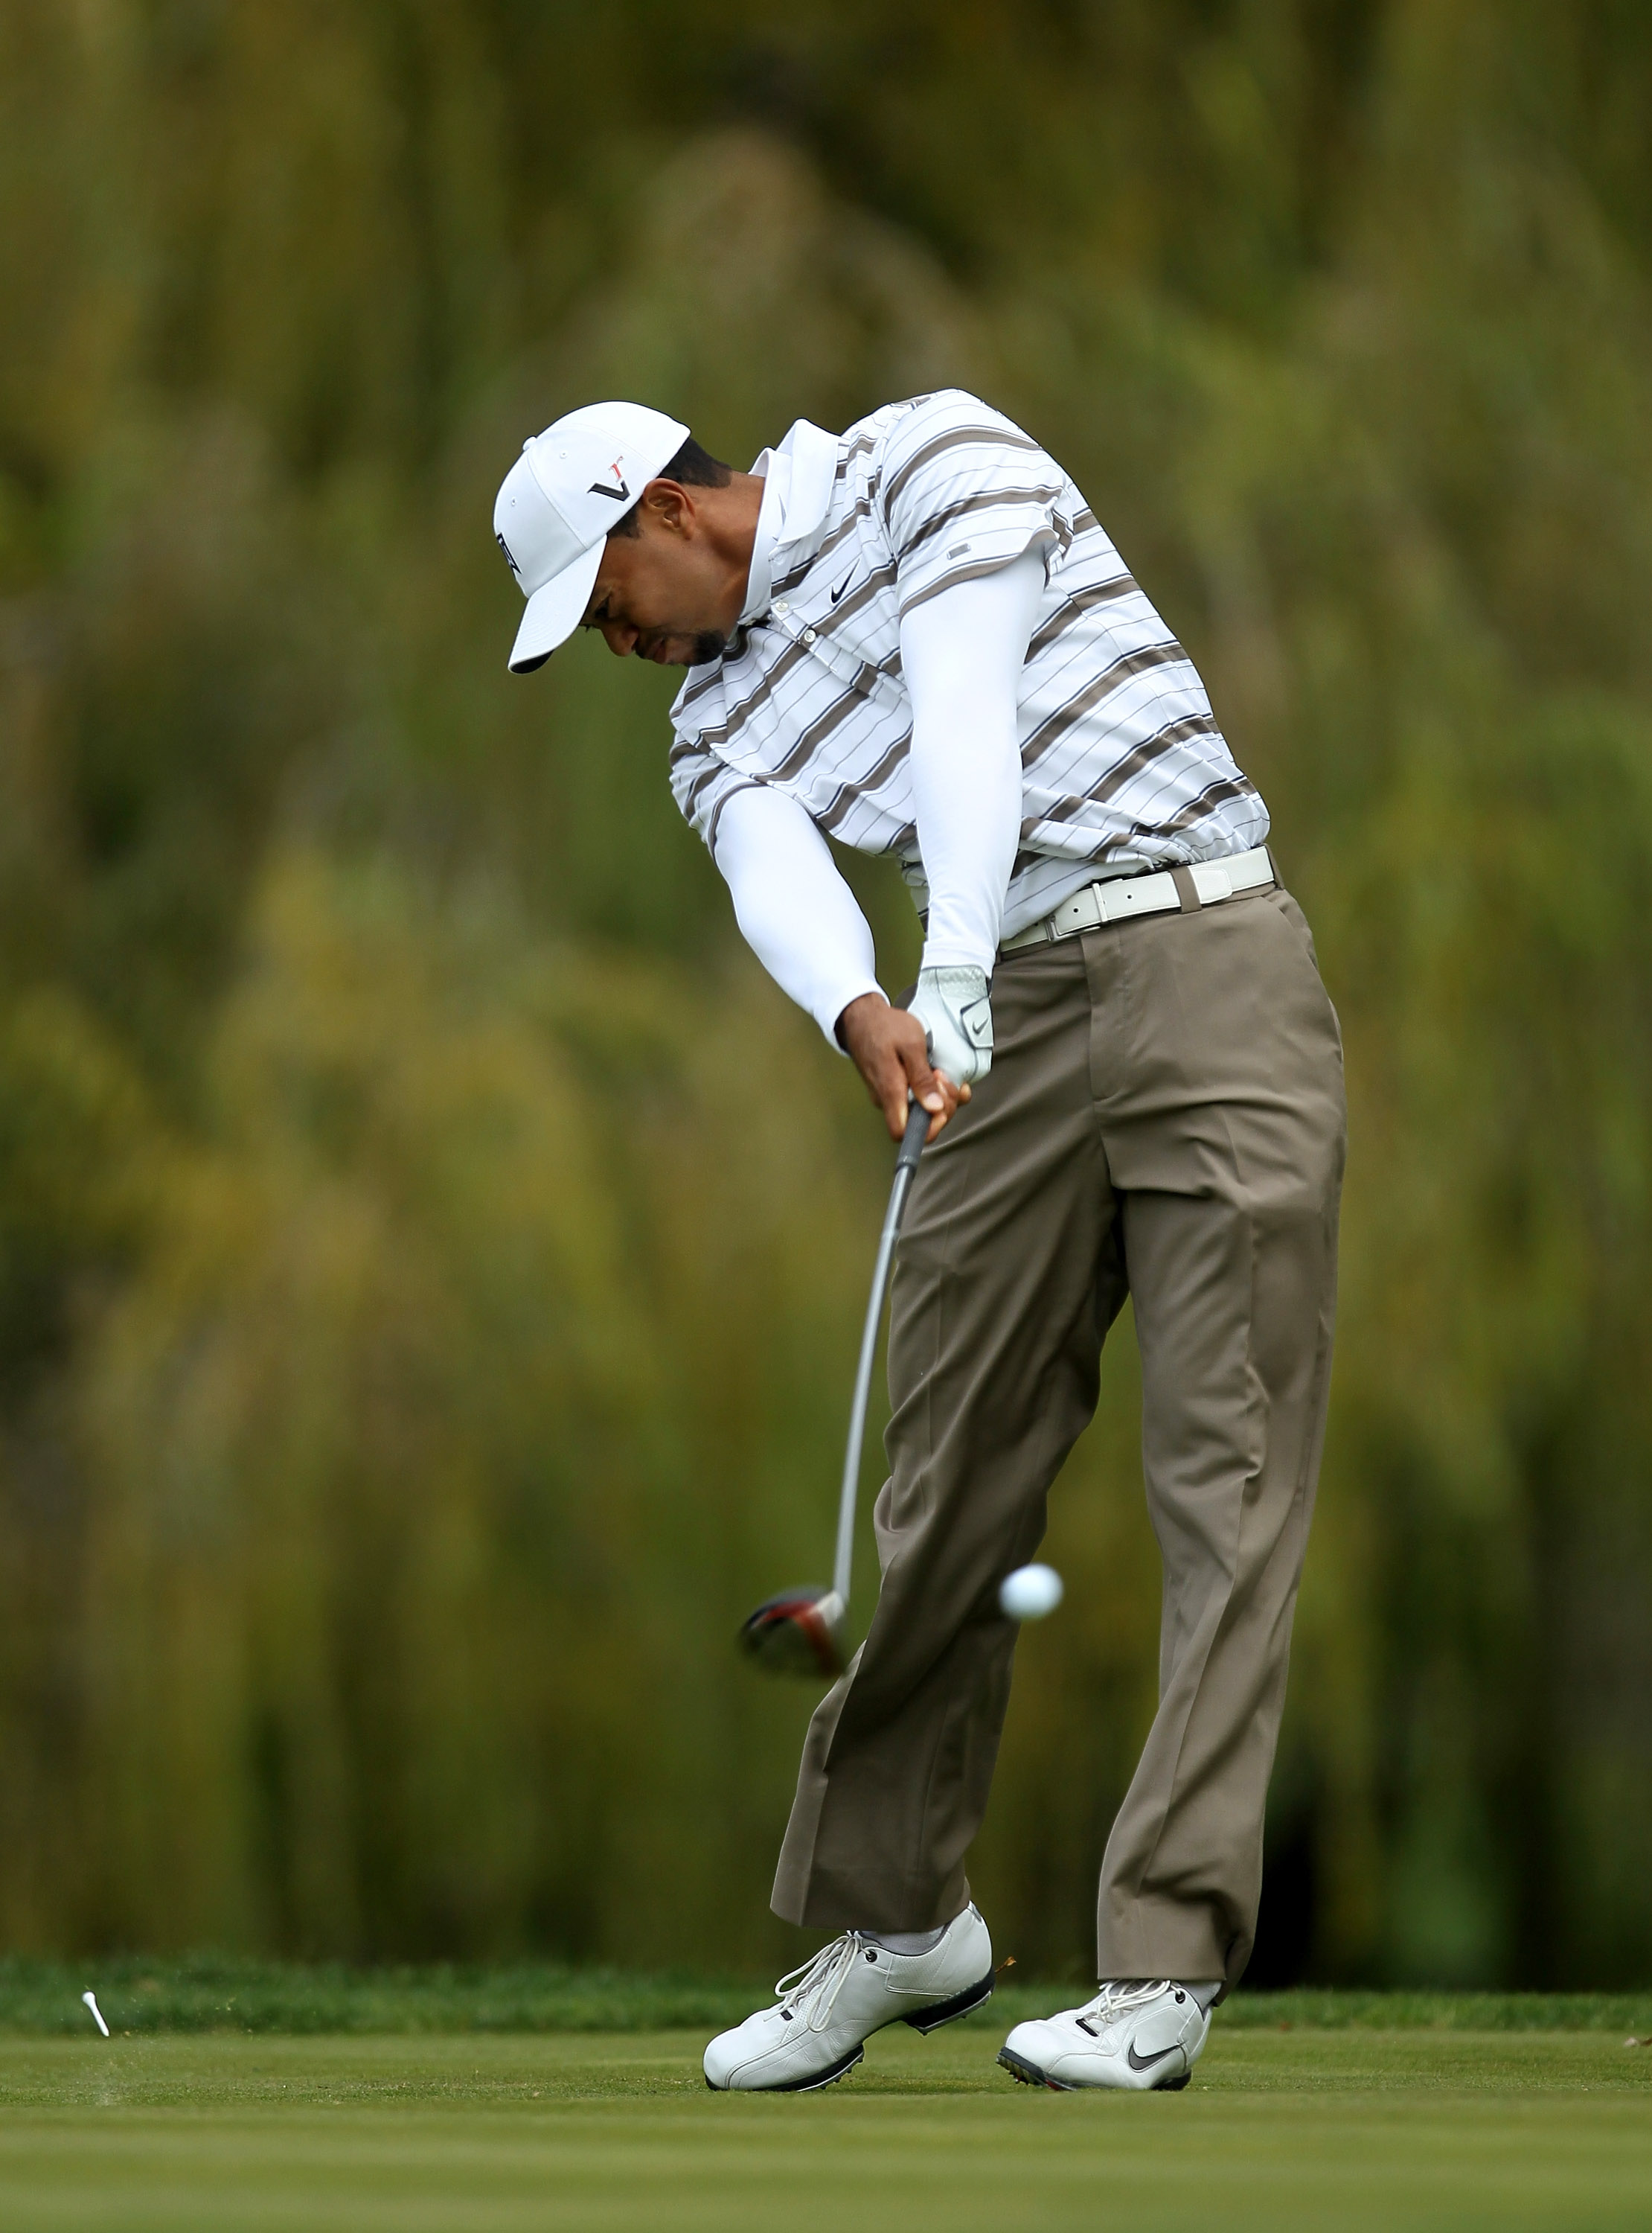 THOUSAND OAKS, CA - DECEMBER 04:  Tiger Woods hits his tee shot on the fifth hole during round three of the Chevron World Challenge at Sherwood Country Club on December 4, 2010 in Thousand Oaks, California.  (Photo by Stephen Dunn/Getty Images)